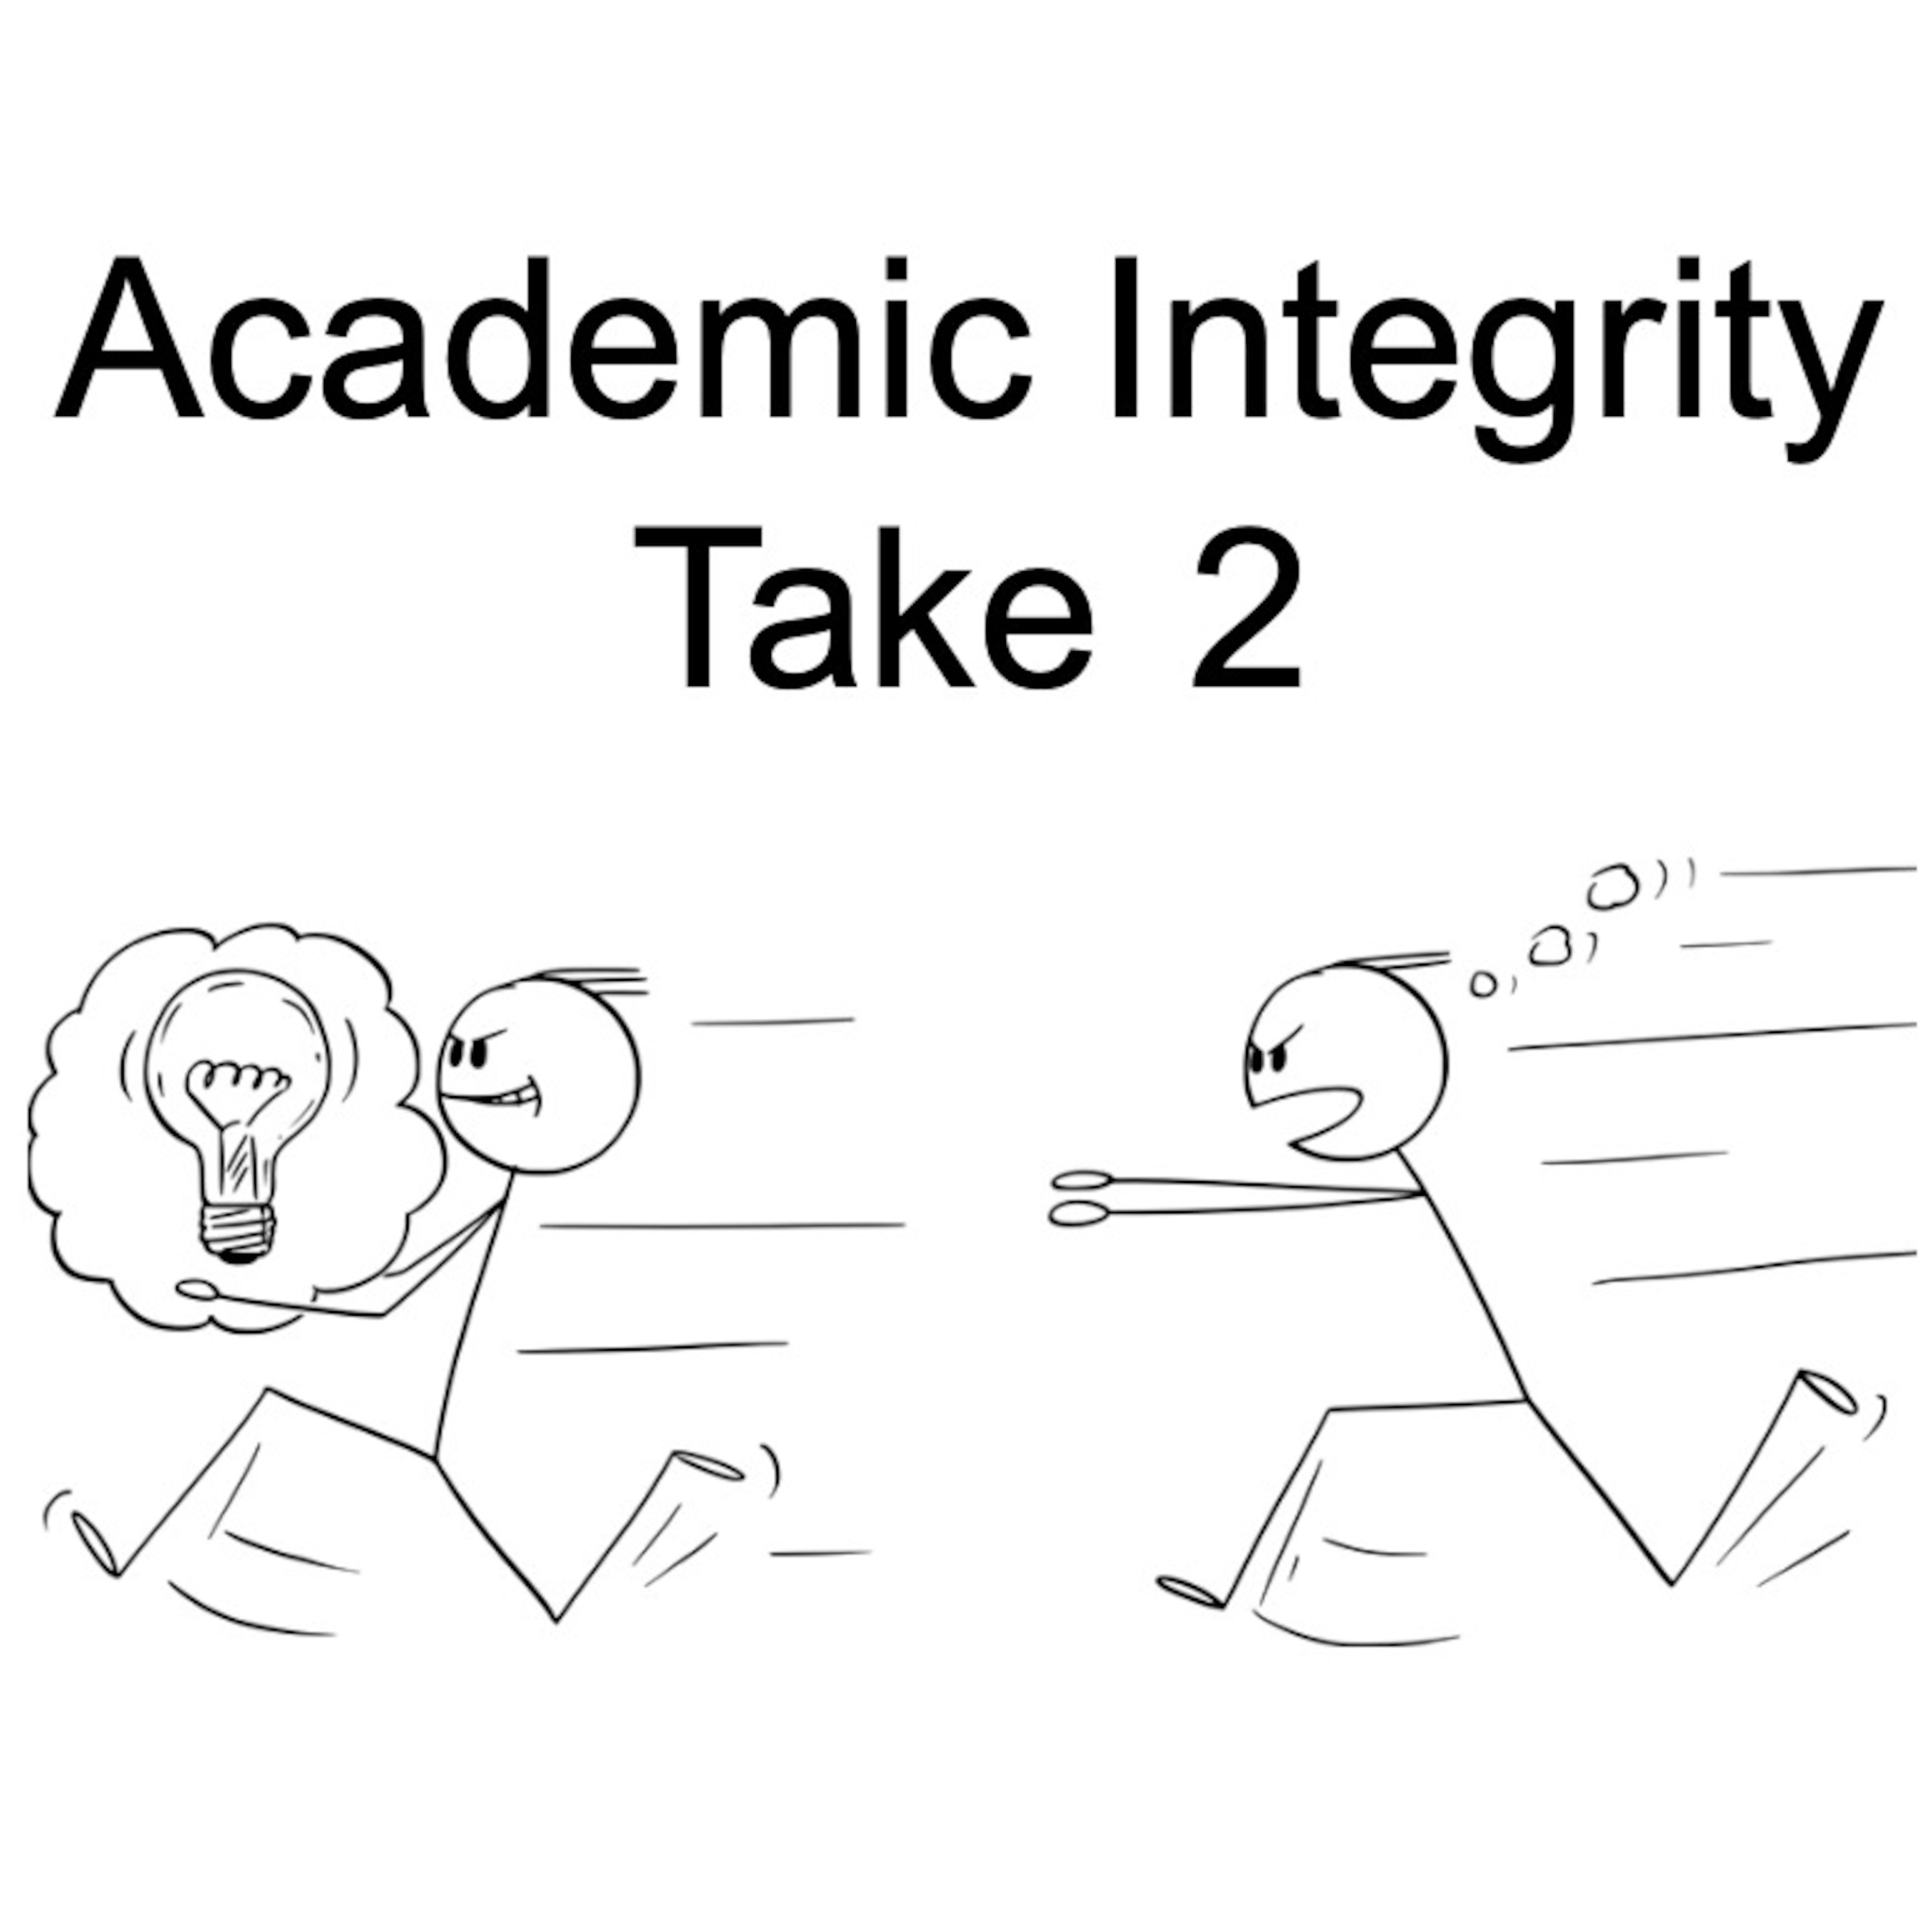 Academic Integrity, Take 2: How often do students cheat?